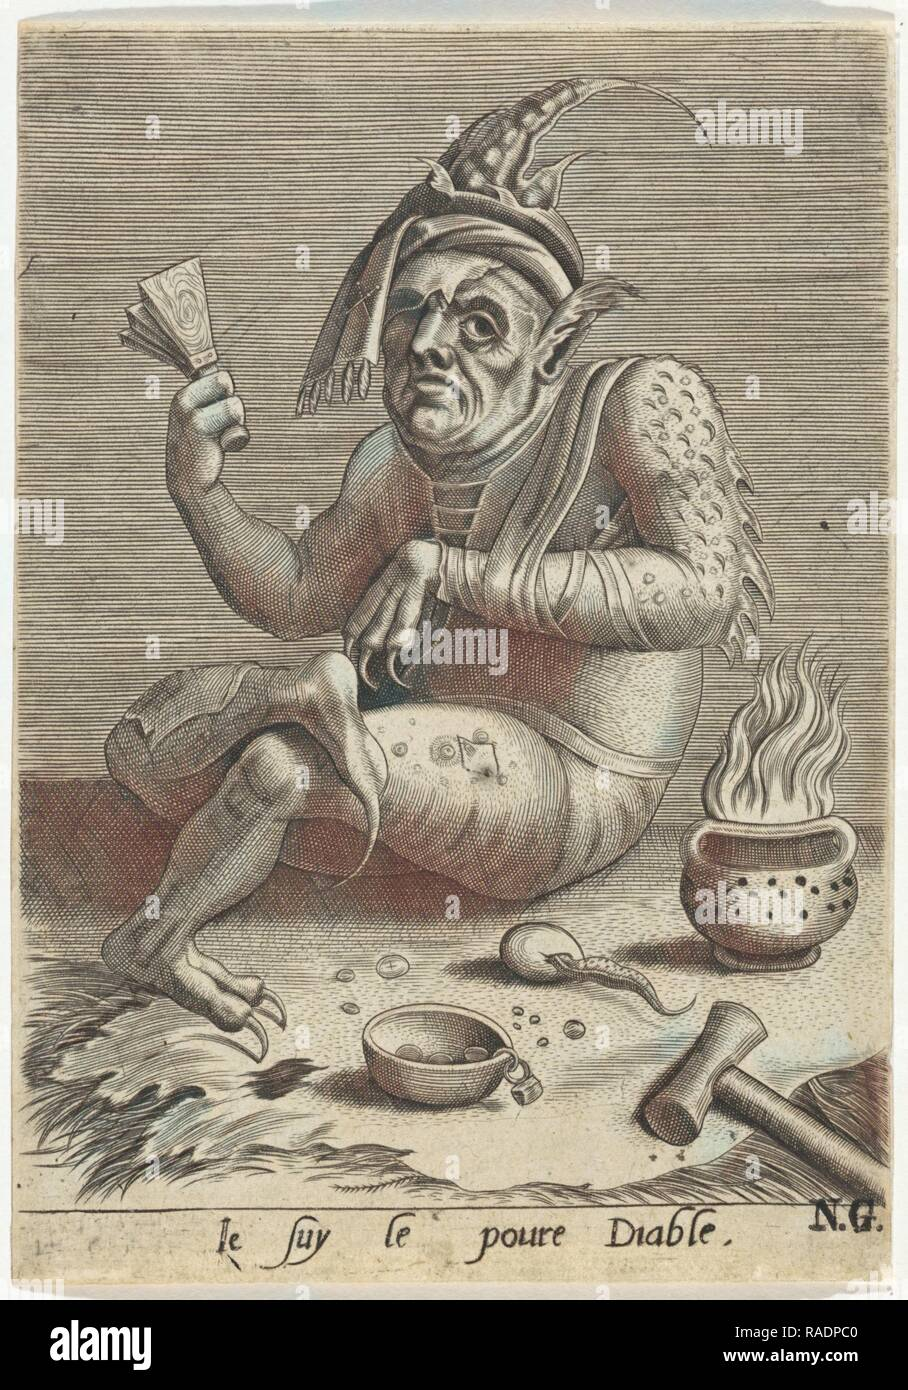 Lepers beggar in the guise of the Devil, Anonymous, Jheronimus Bosch, 1474 - 156. Reimagined by Gibon. Classic art reimagined - Stock Image